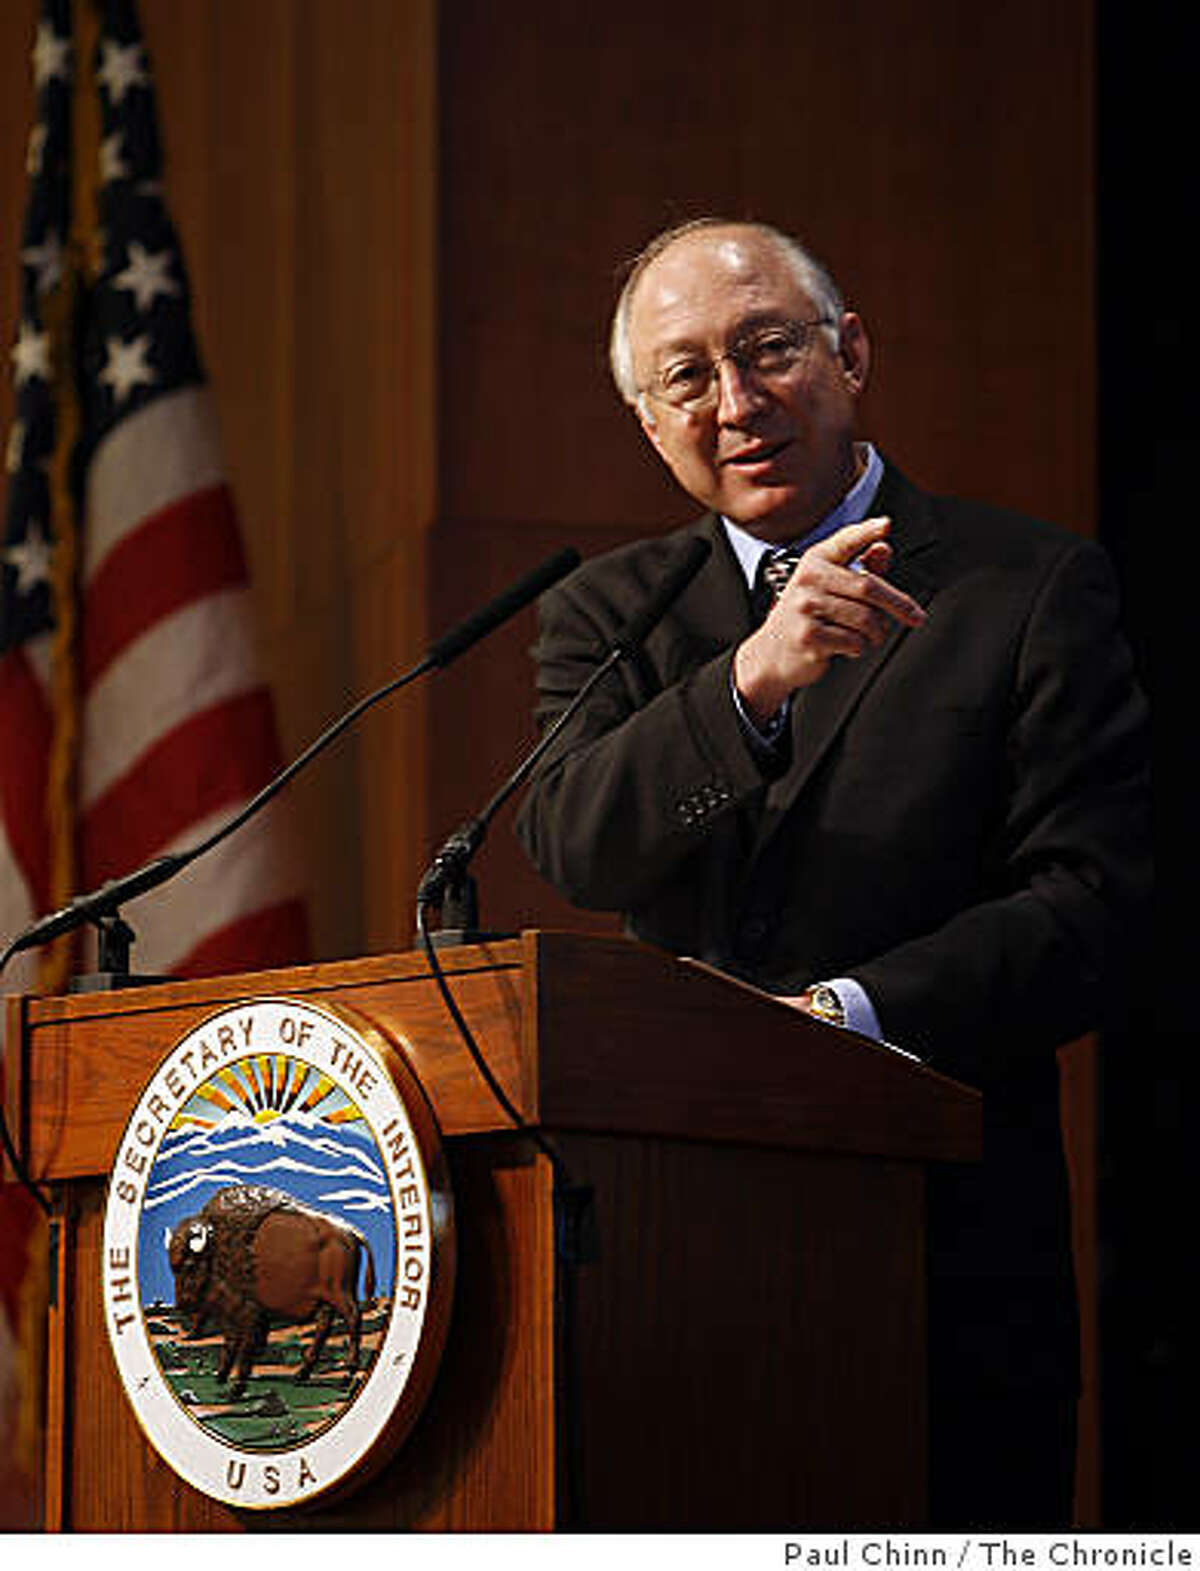 Secretary of the Interior Ken Salazar makes opening comments at a public hearing convened by the Department of the Interior to address offshore oil drilling in San Francisco, Calif., on Thursday, April 16, 2009.